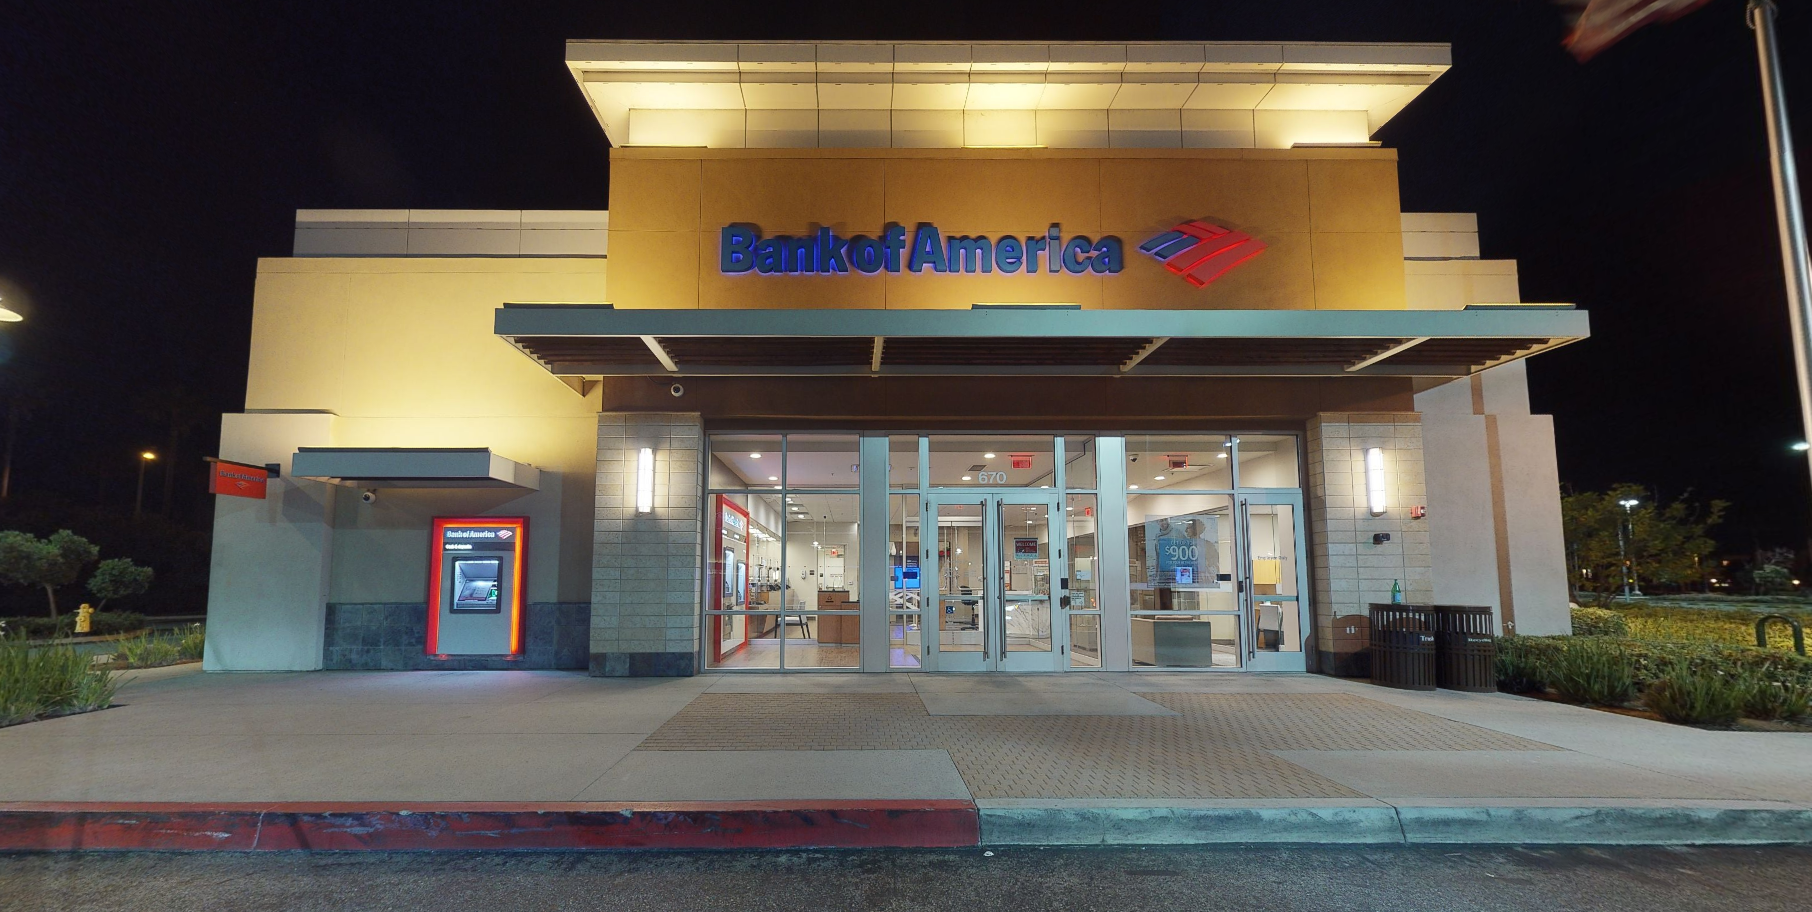 Bank of America financial center with walk-up ATM   670 Town Center Dr, Oxnard, CA 93036